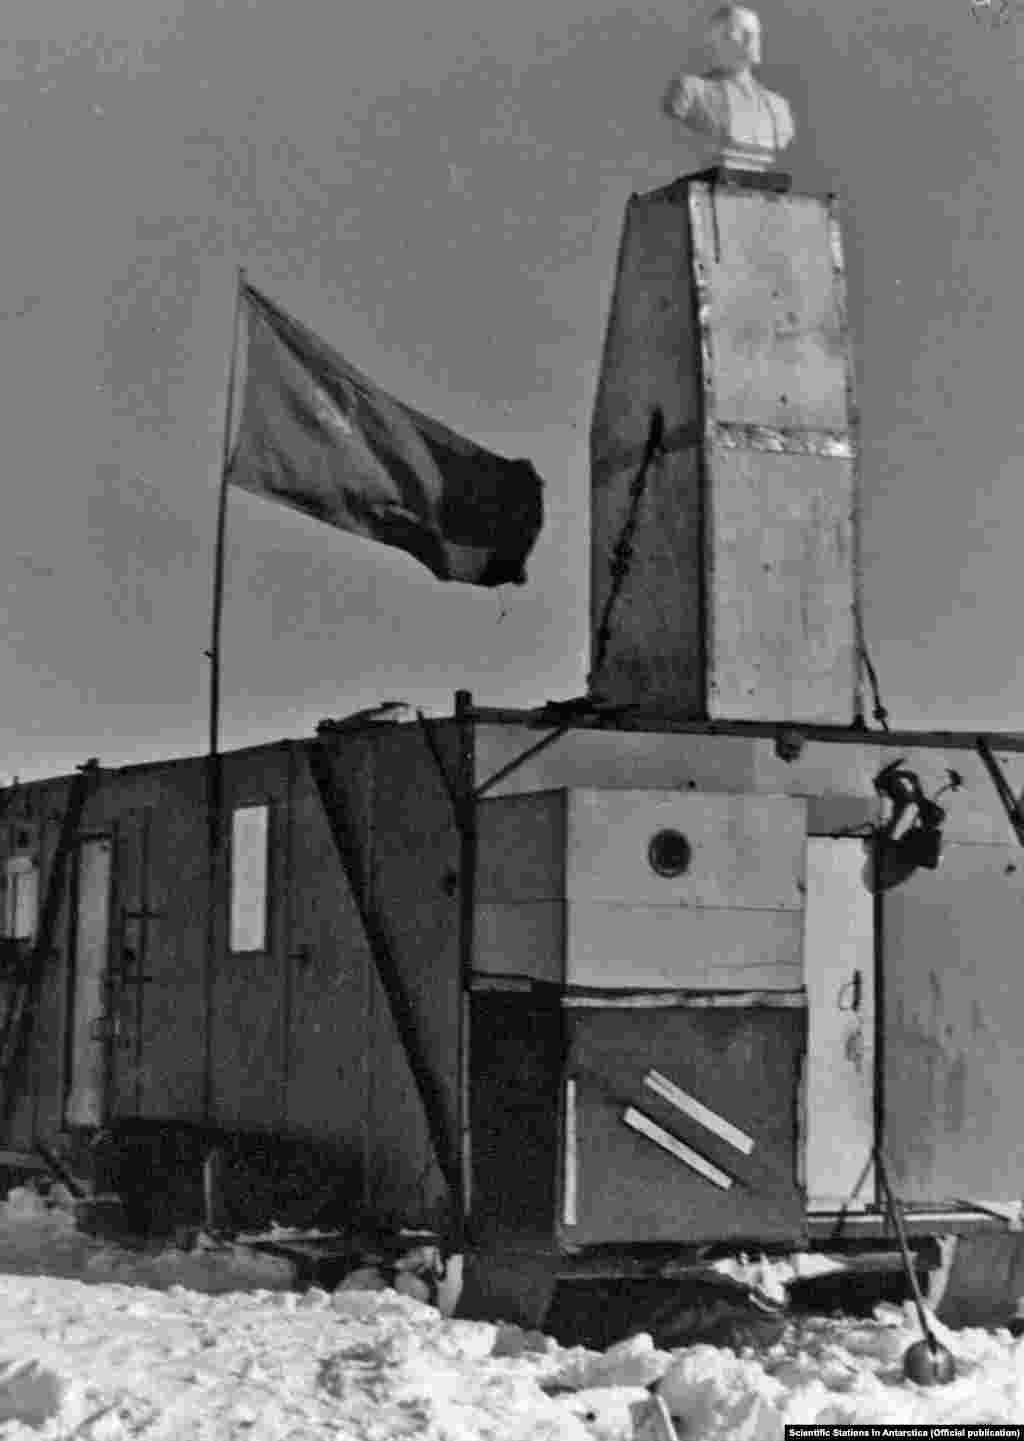 ANTARCTICA -- The Pole of Inaccessibility -- The main hut as seen during the original station occupancy